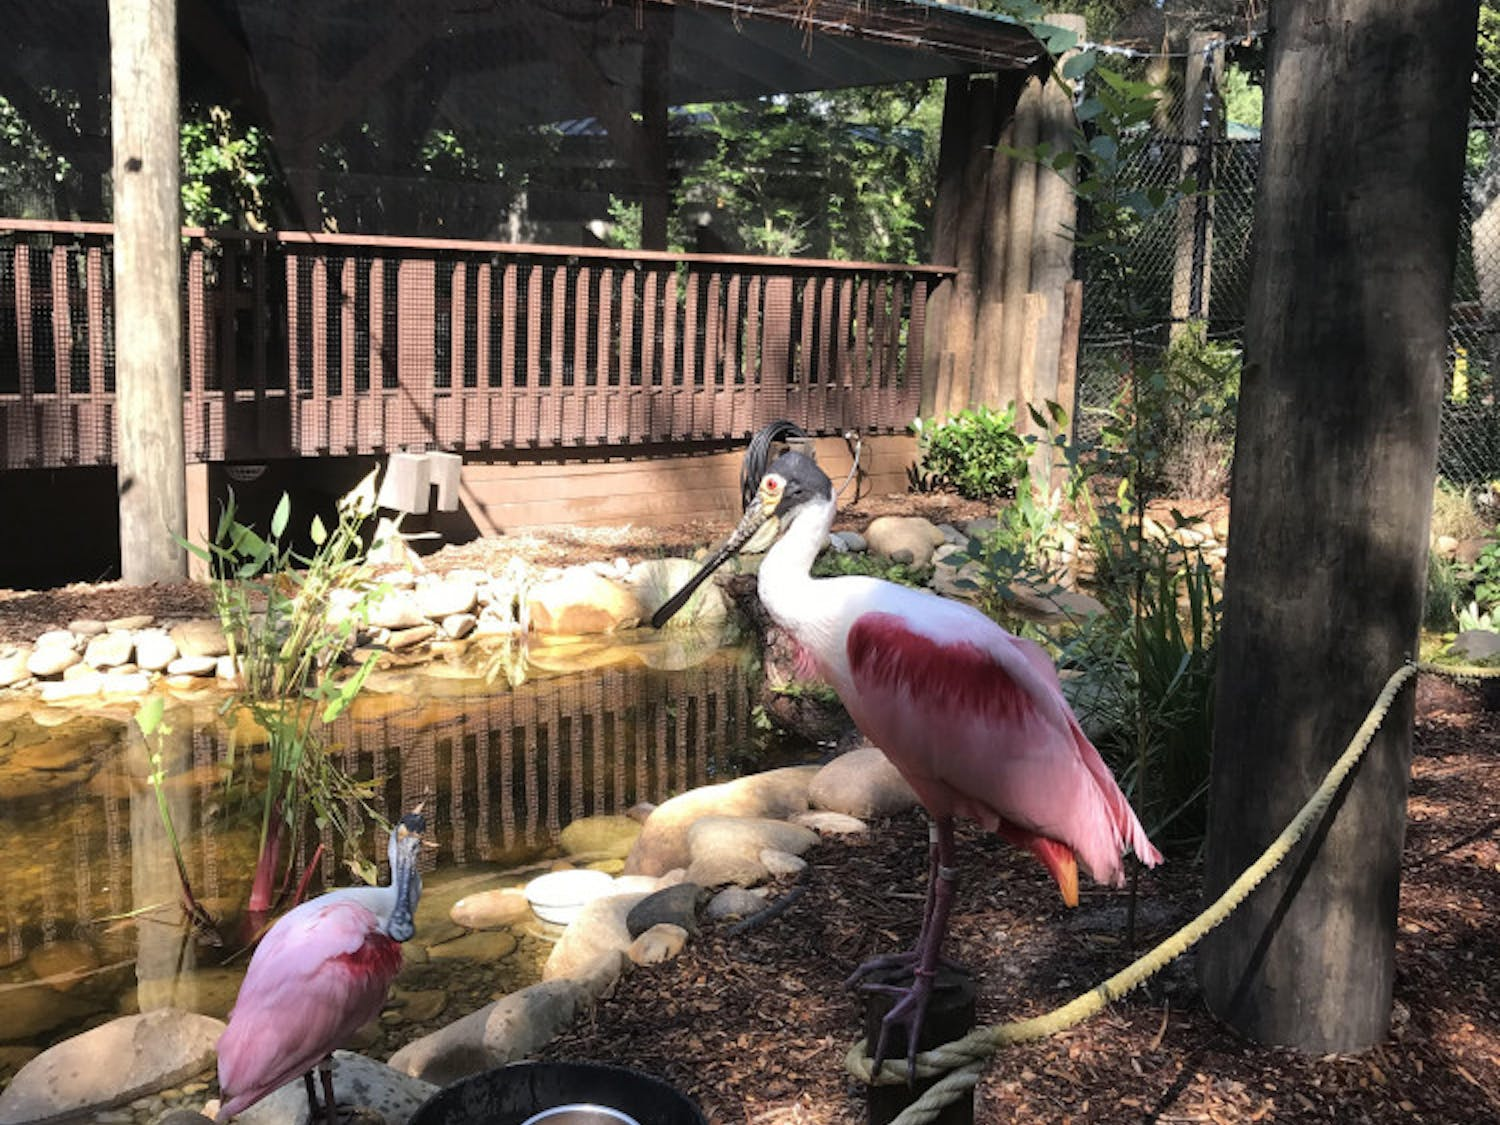 Two roseate spoonbills sunbathe along the walkway of their new home.